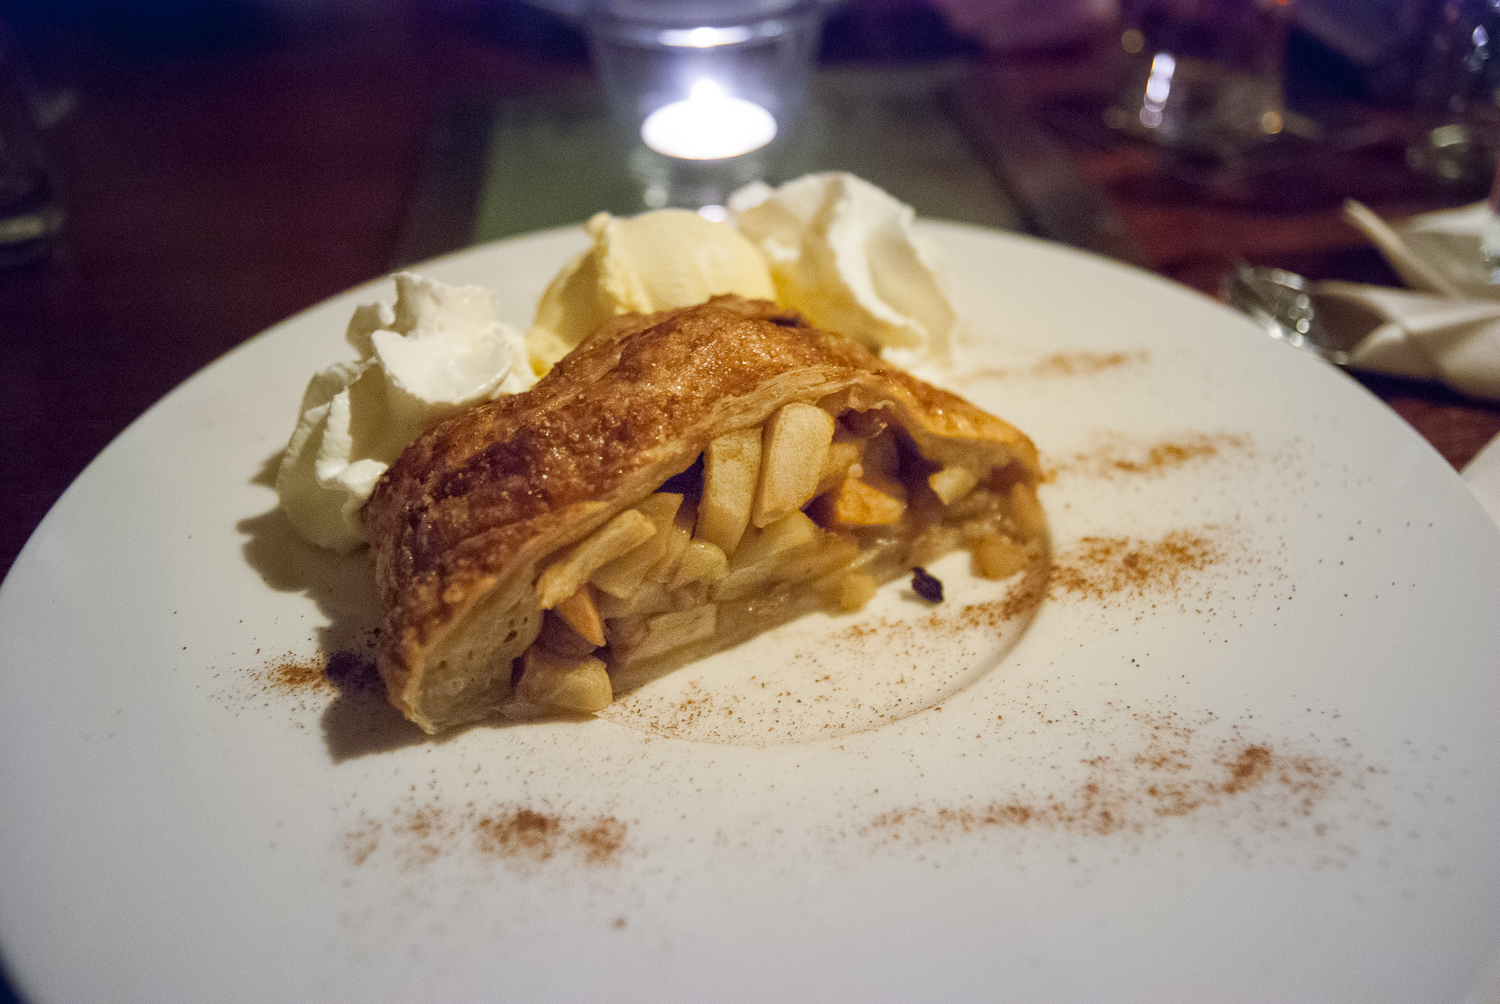 Baked apple strudel